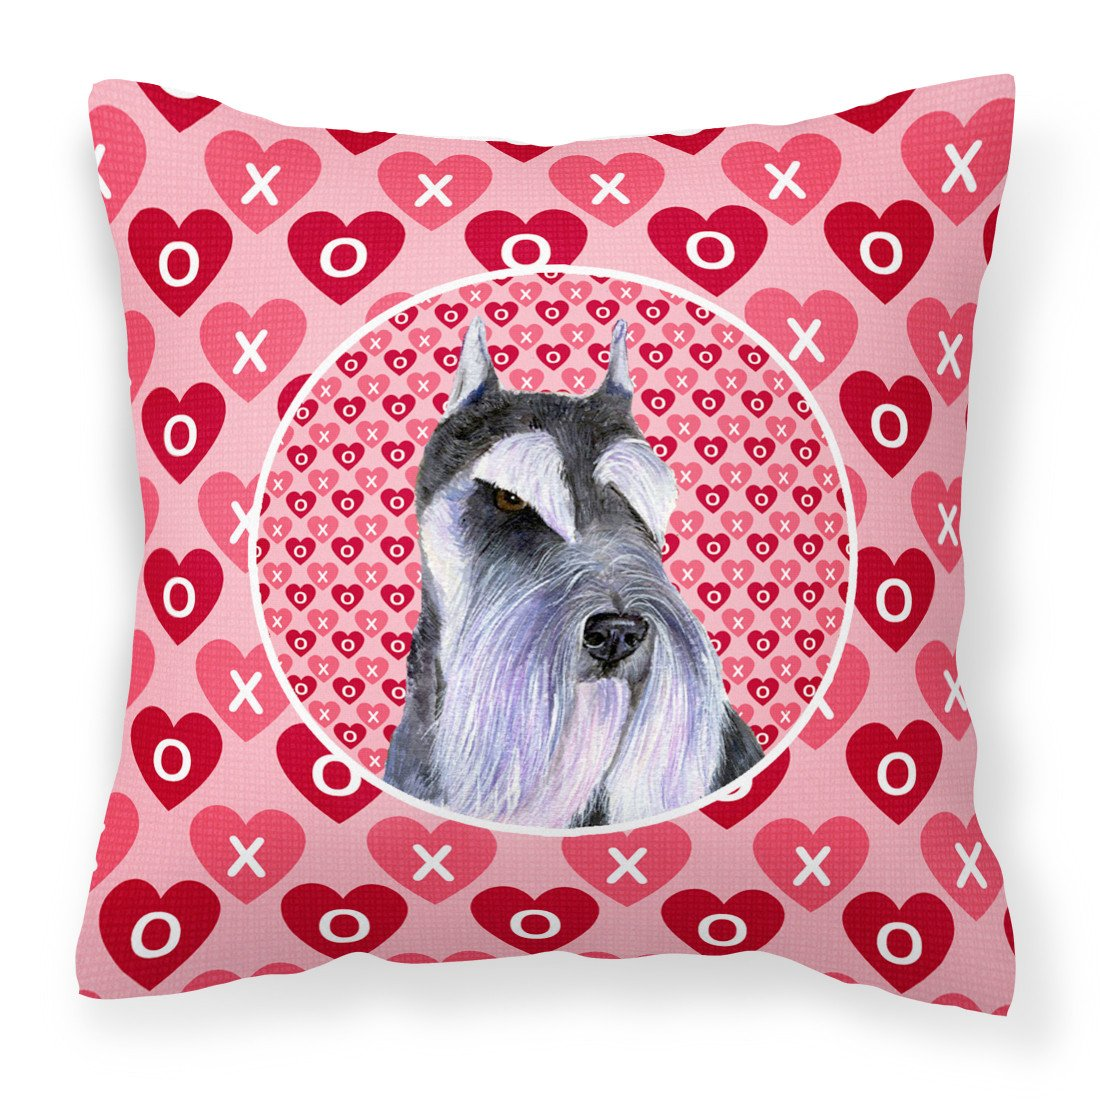 Schnauzer Hearts Love and Valentine's Day Portrait Fabric Decorative Pillow SS4477PW1414 by Caroline's Treasures